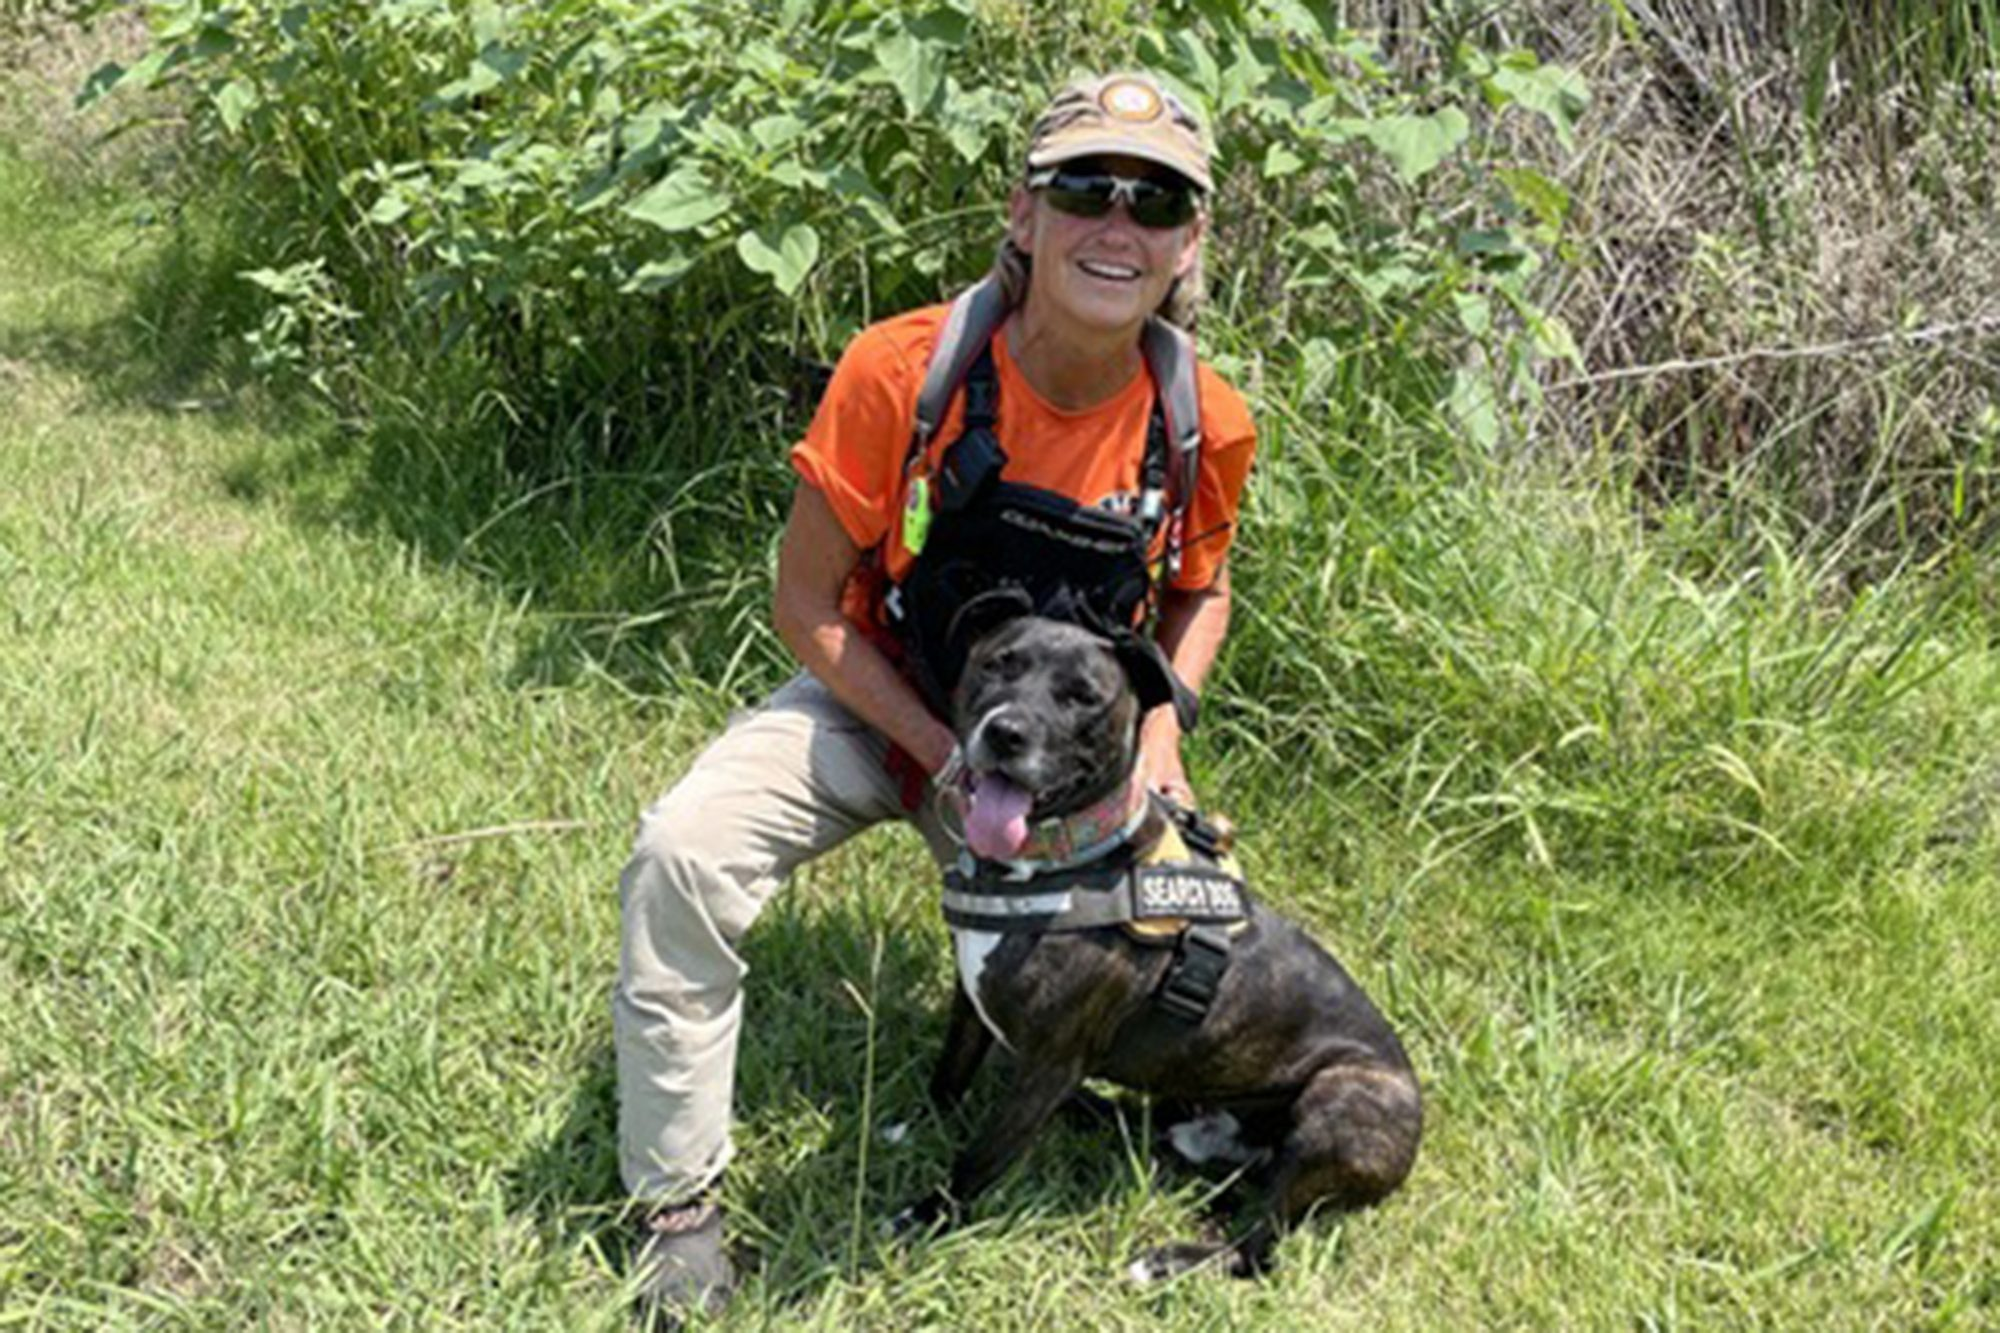 Molly Gibb and Little Man, dog hero